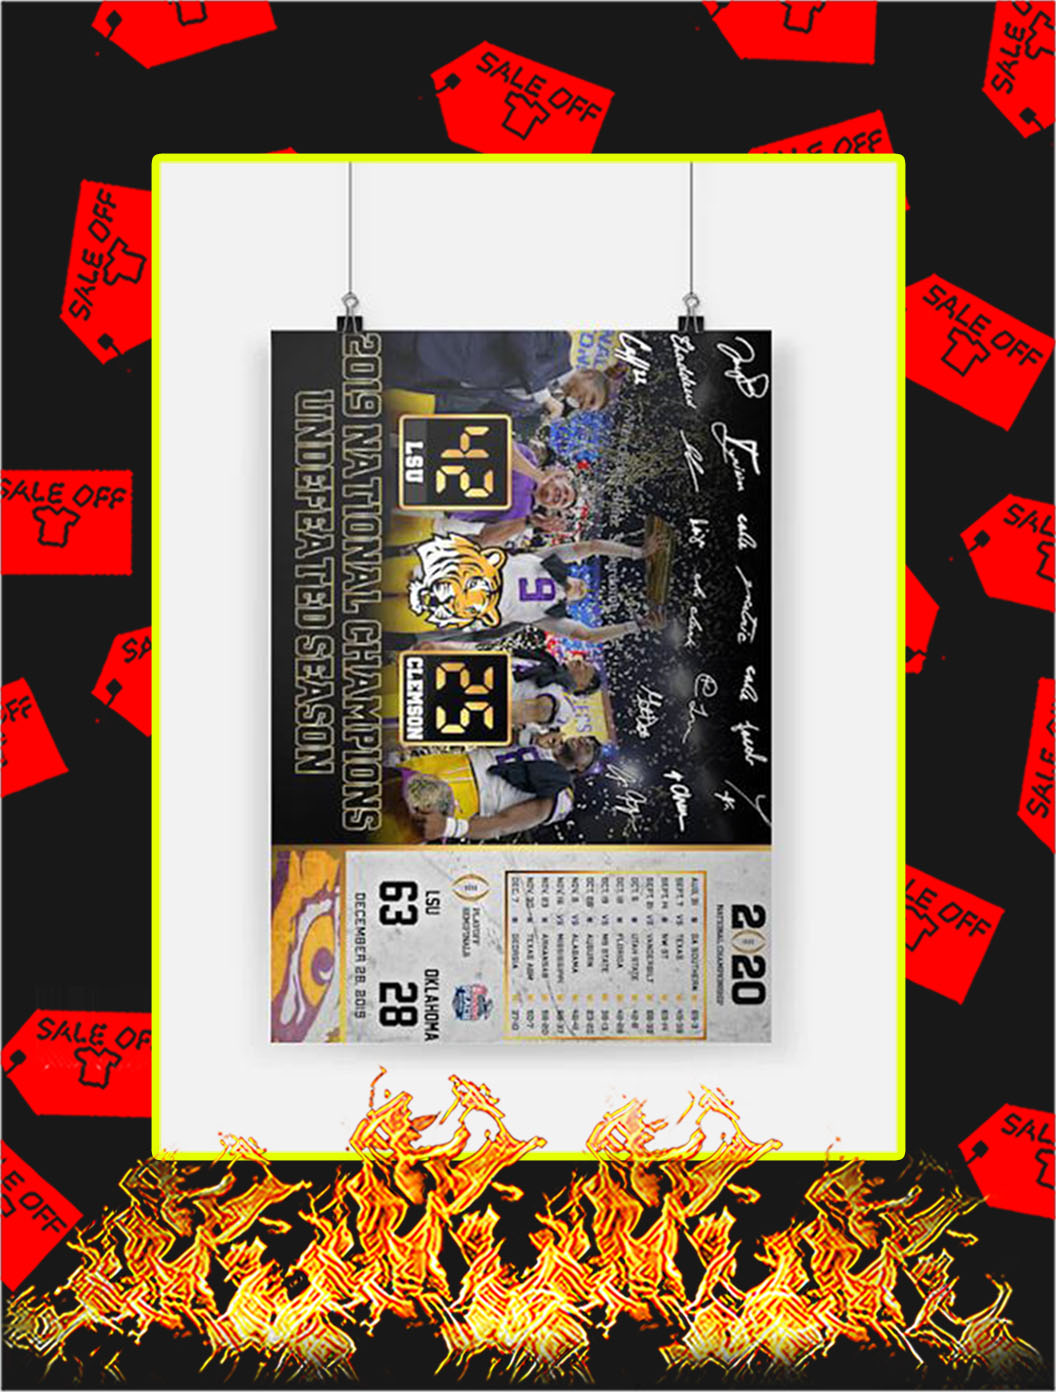 2019 National Champions Undefeated Season LSU Poster - A2